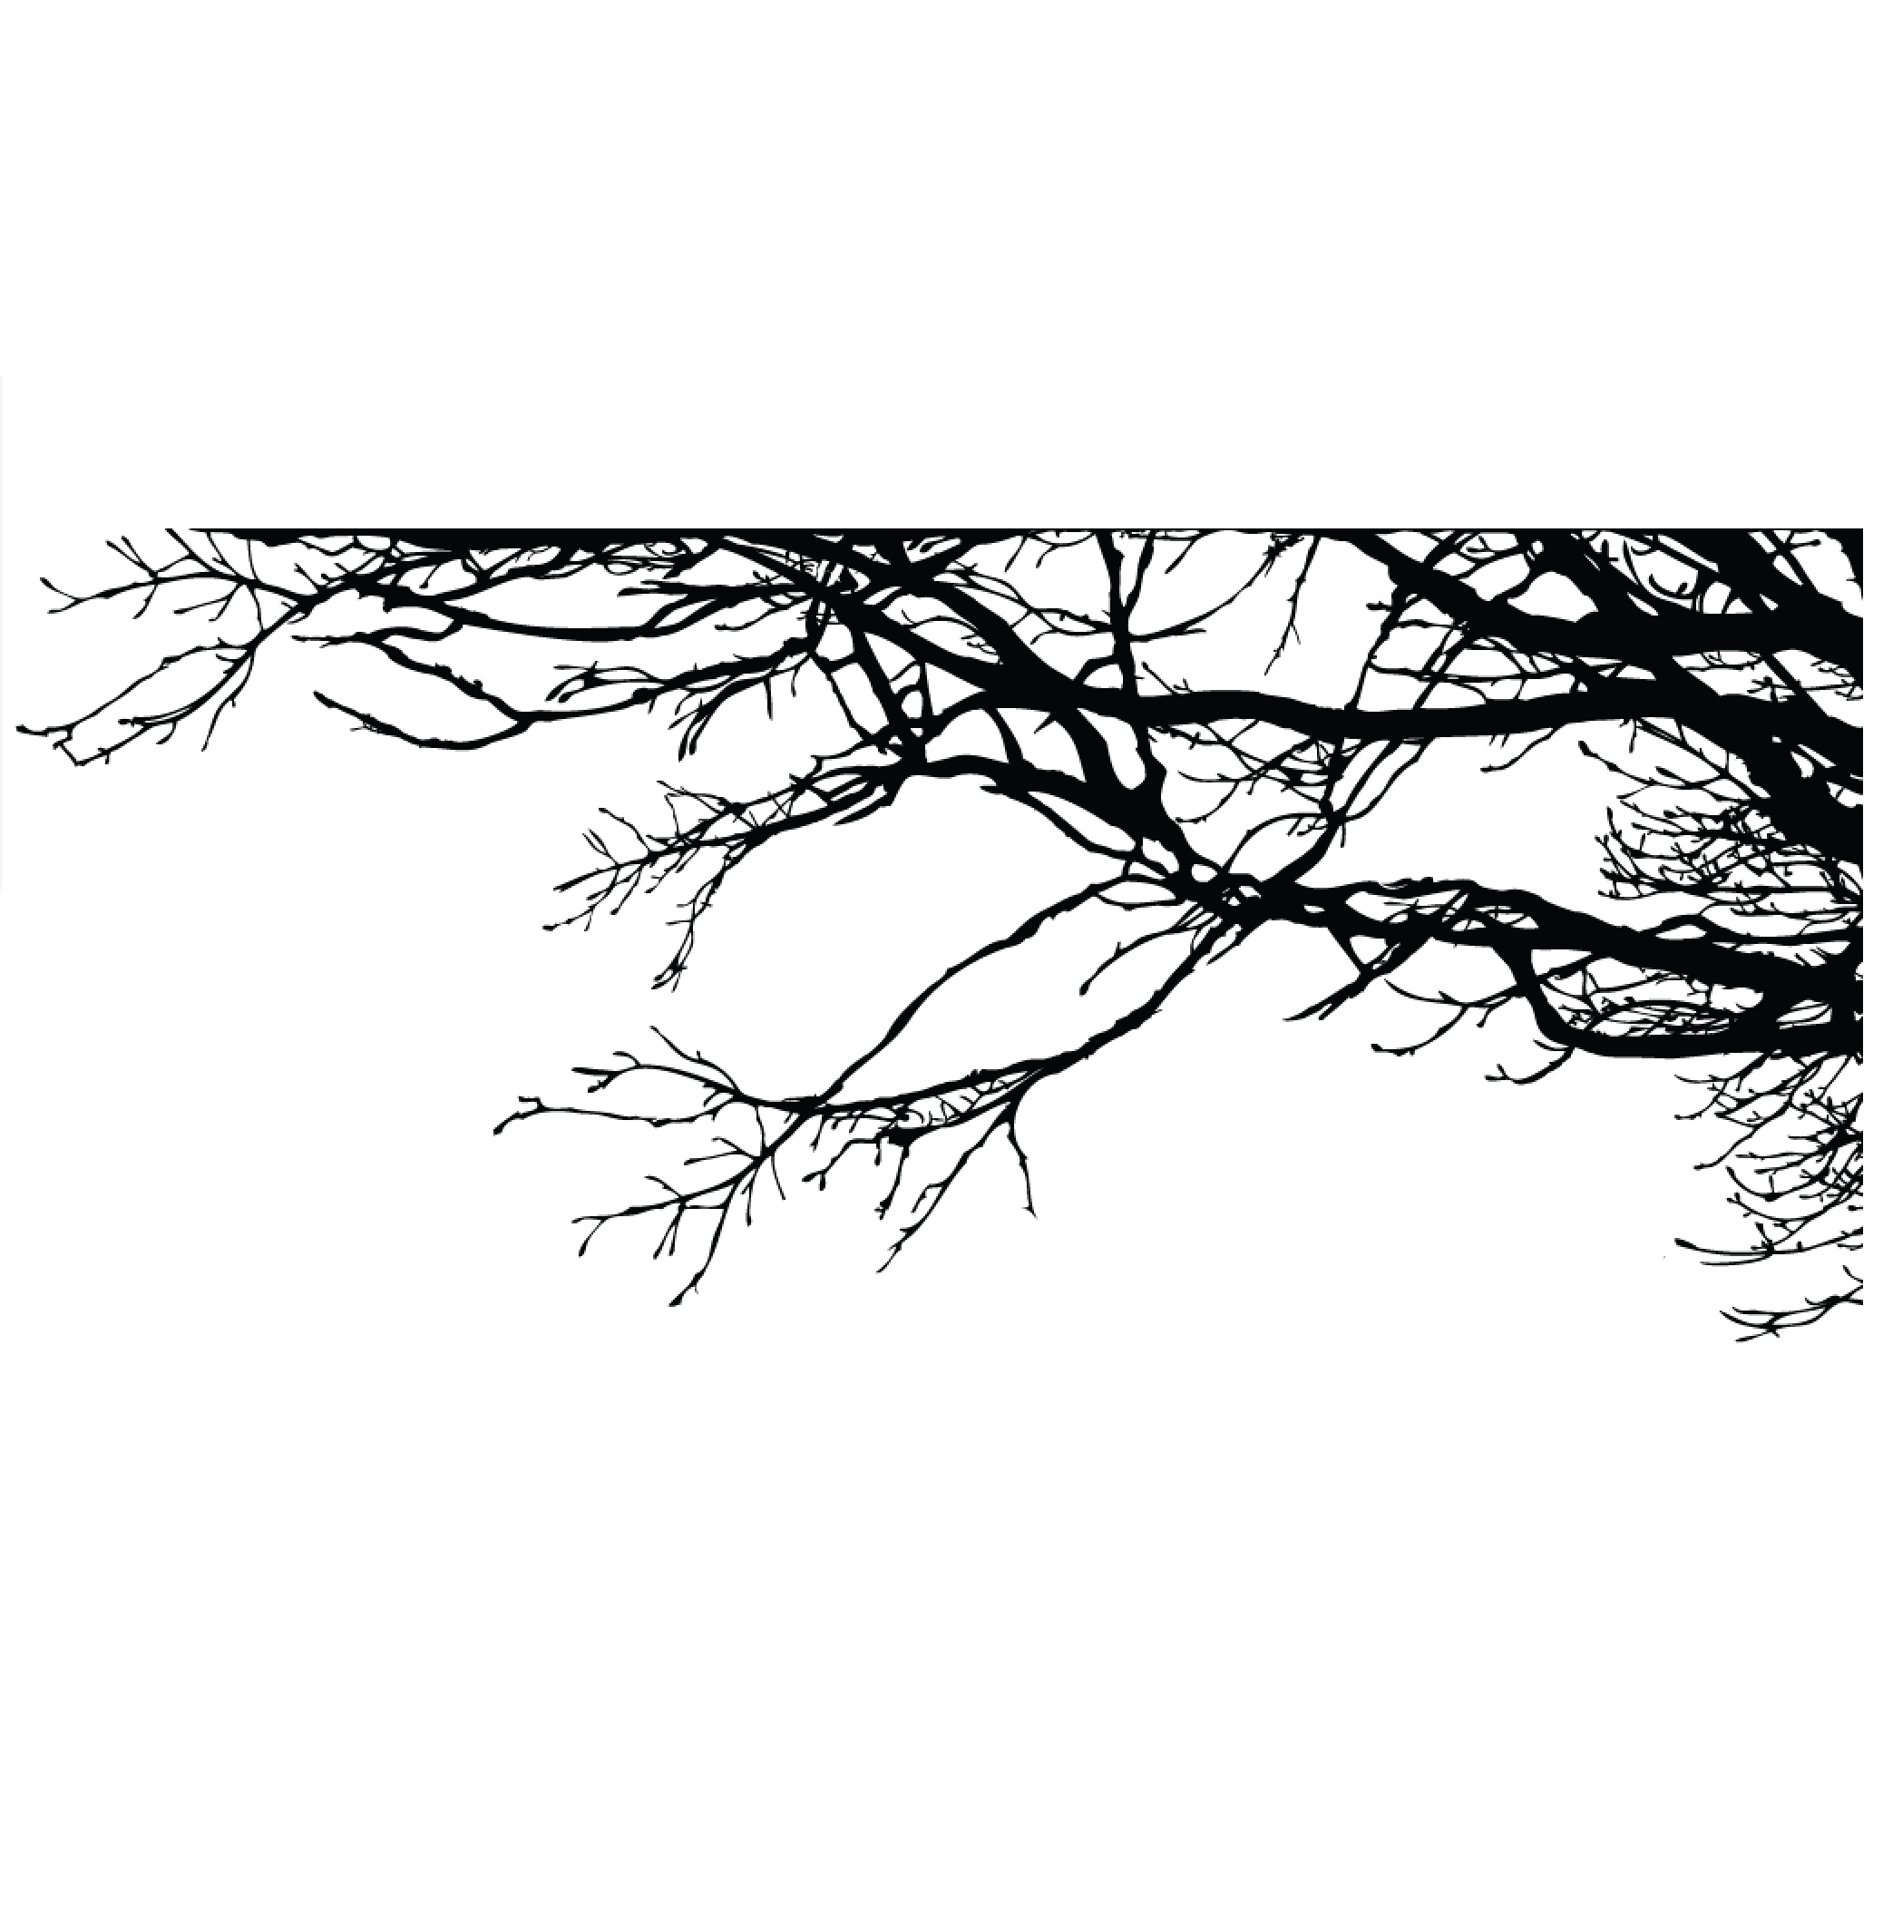 Large Tree Wall Decal Sticker - Semi-Gloss Black Tree Branches, 44in X 100in, Right to Left. Removable, No Paint Needed, Tree Branch Wall Stencil The Easy Way.